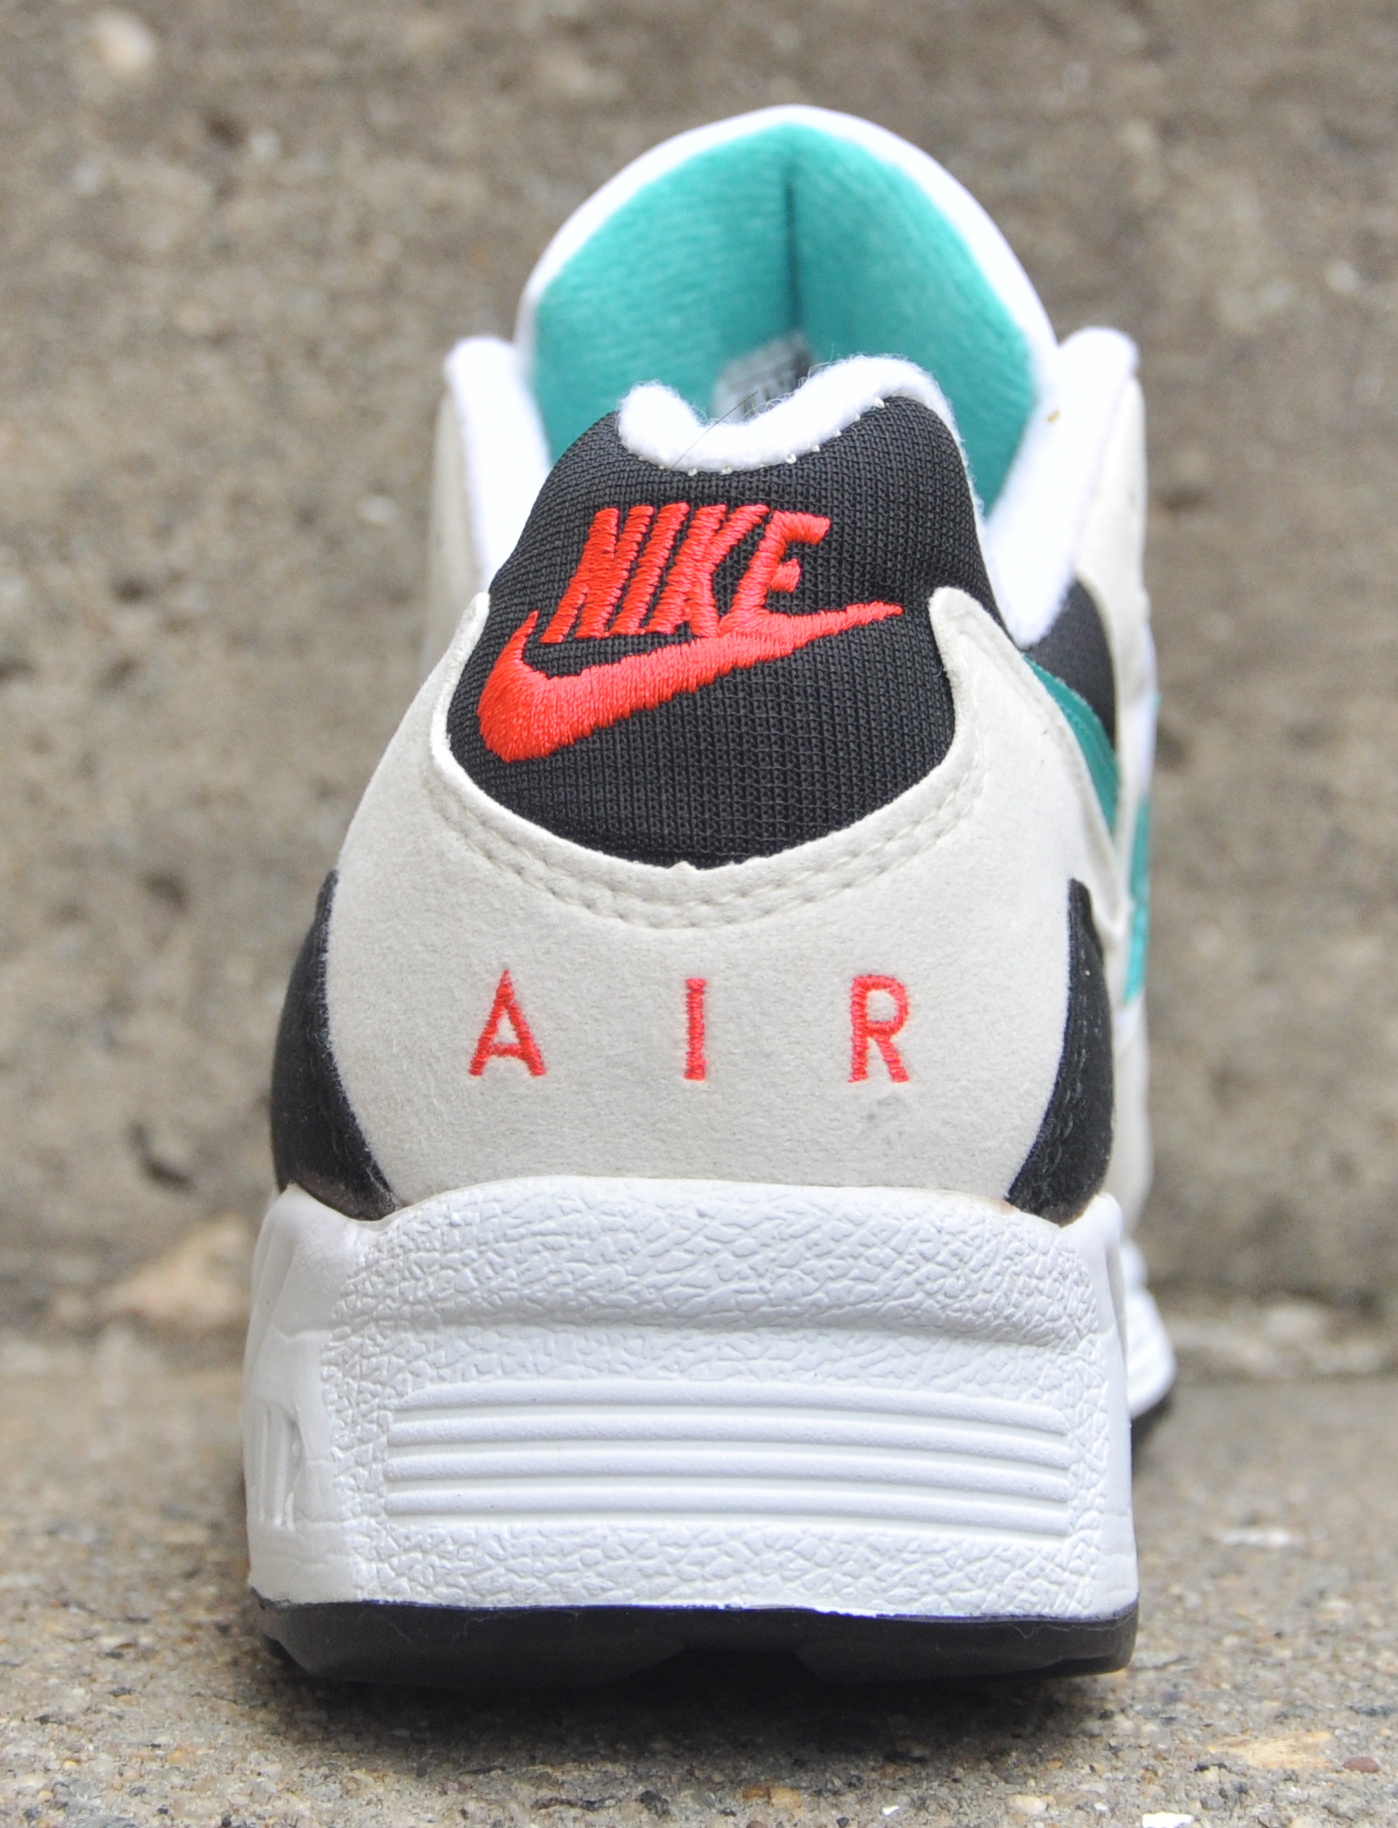 Nike Air Icarus Extra White Jade Black Crimson (Size